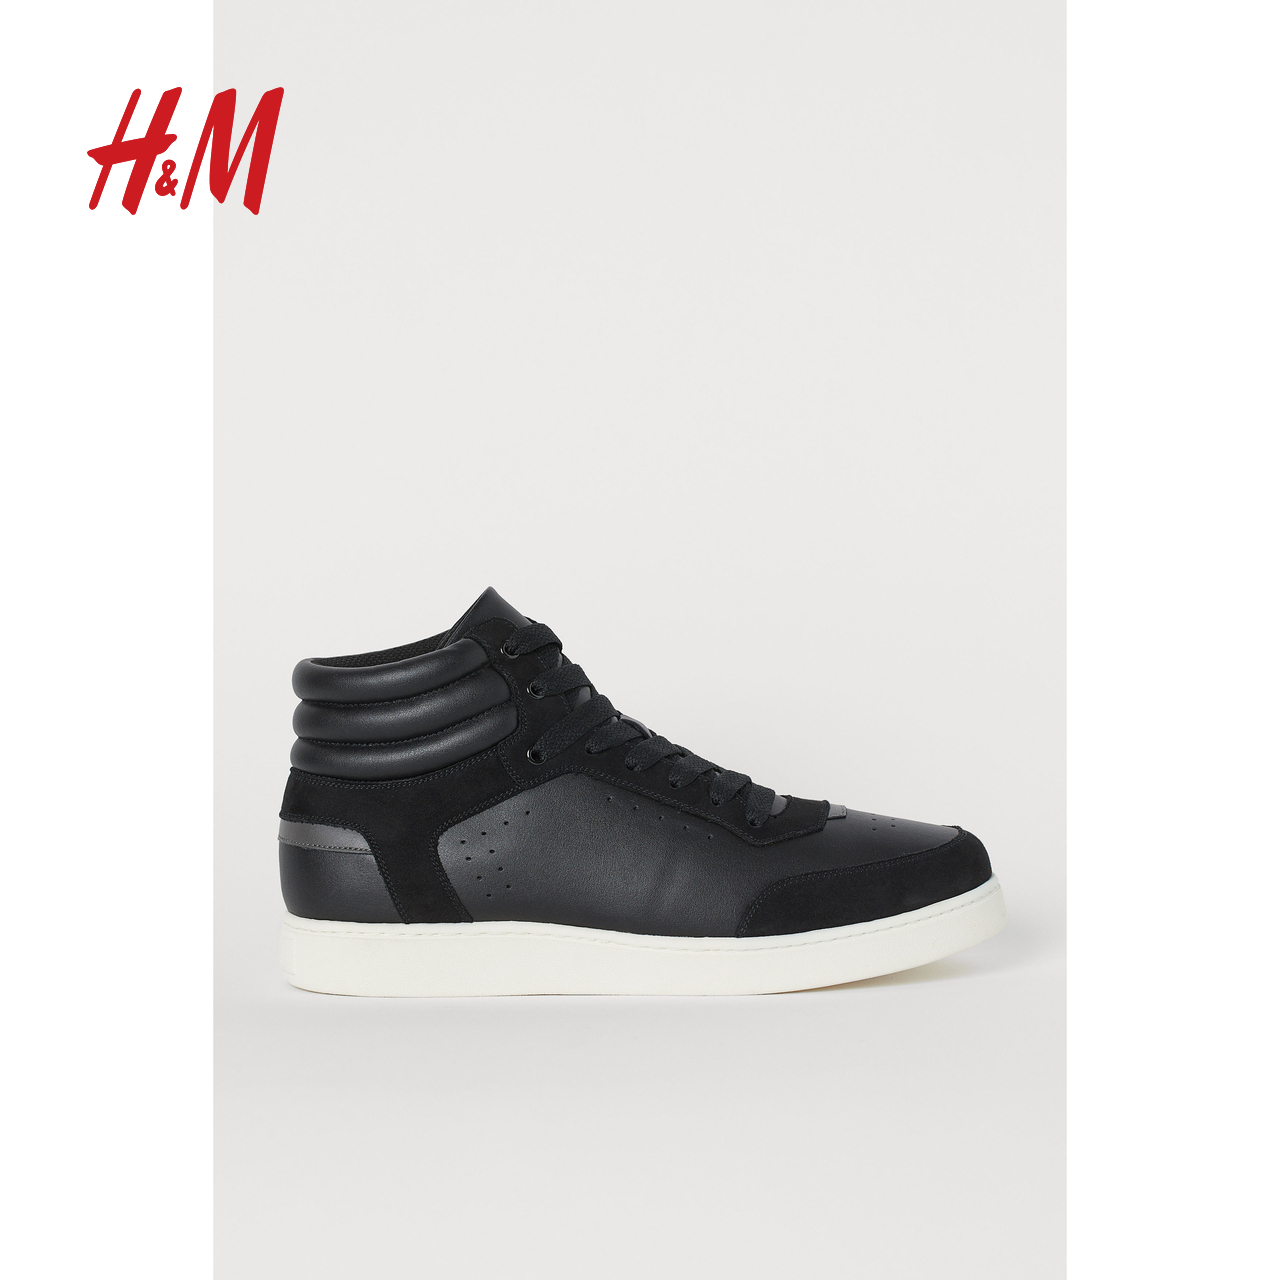 HM men's shoes 2020 spring new men's trend leisure high top sports shoes 0824441